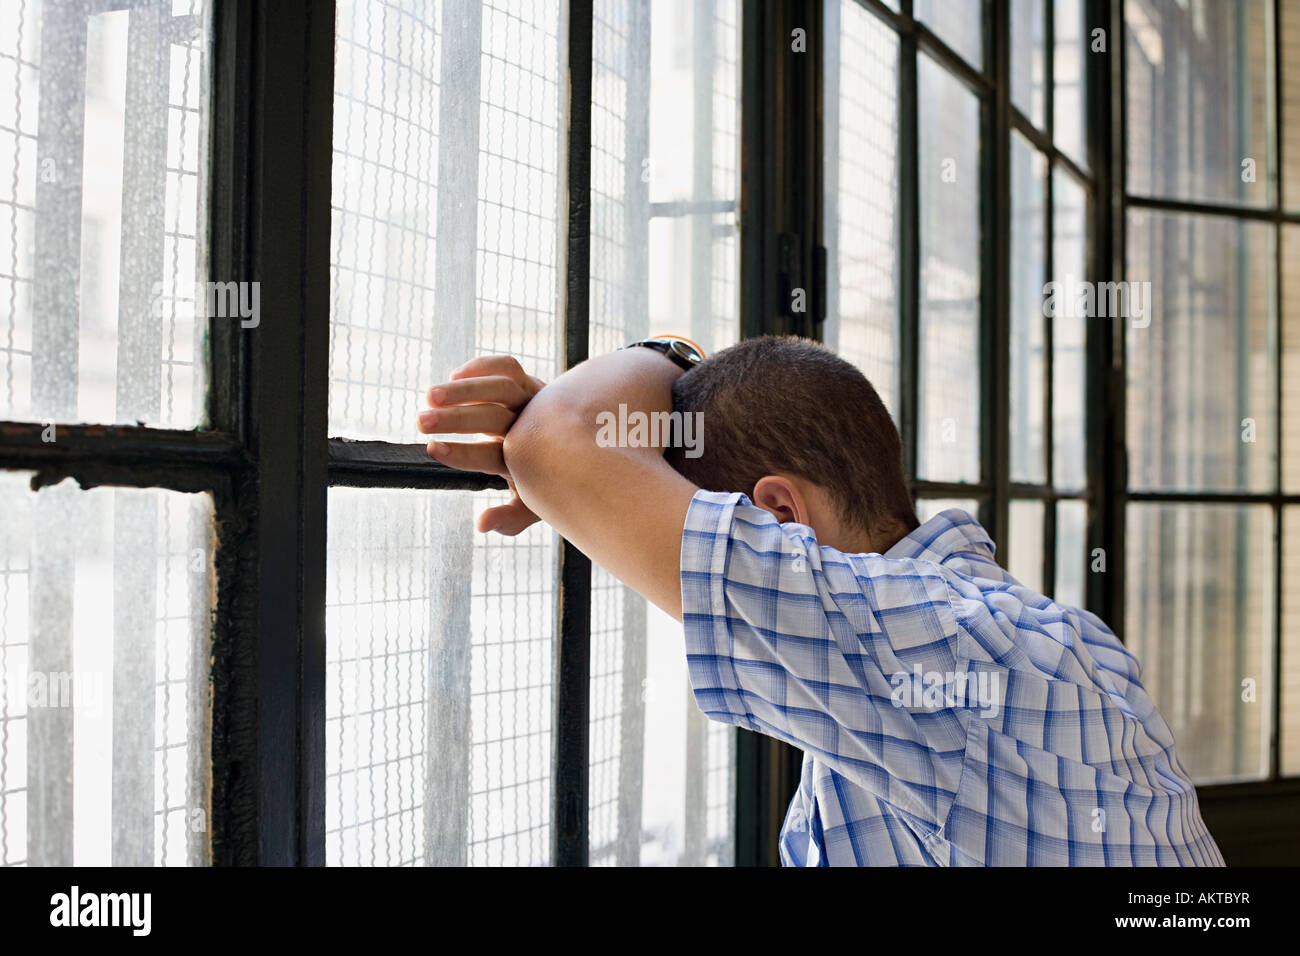 Teenage boy leaning against a window - Stock Image